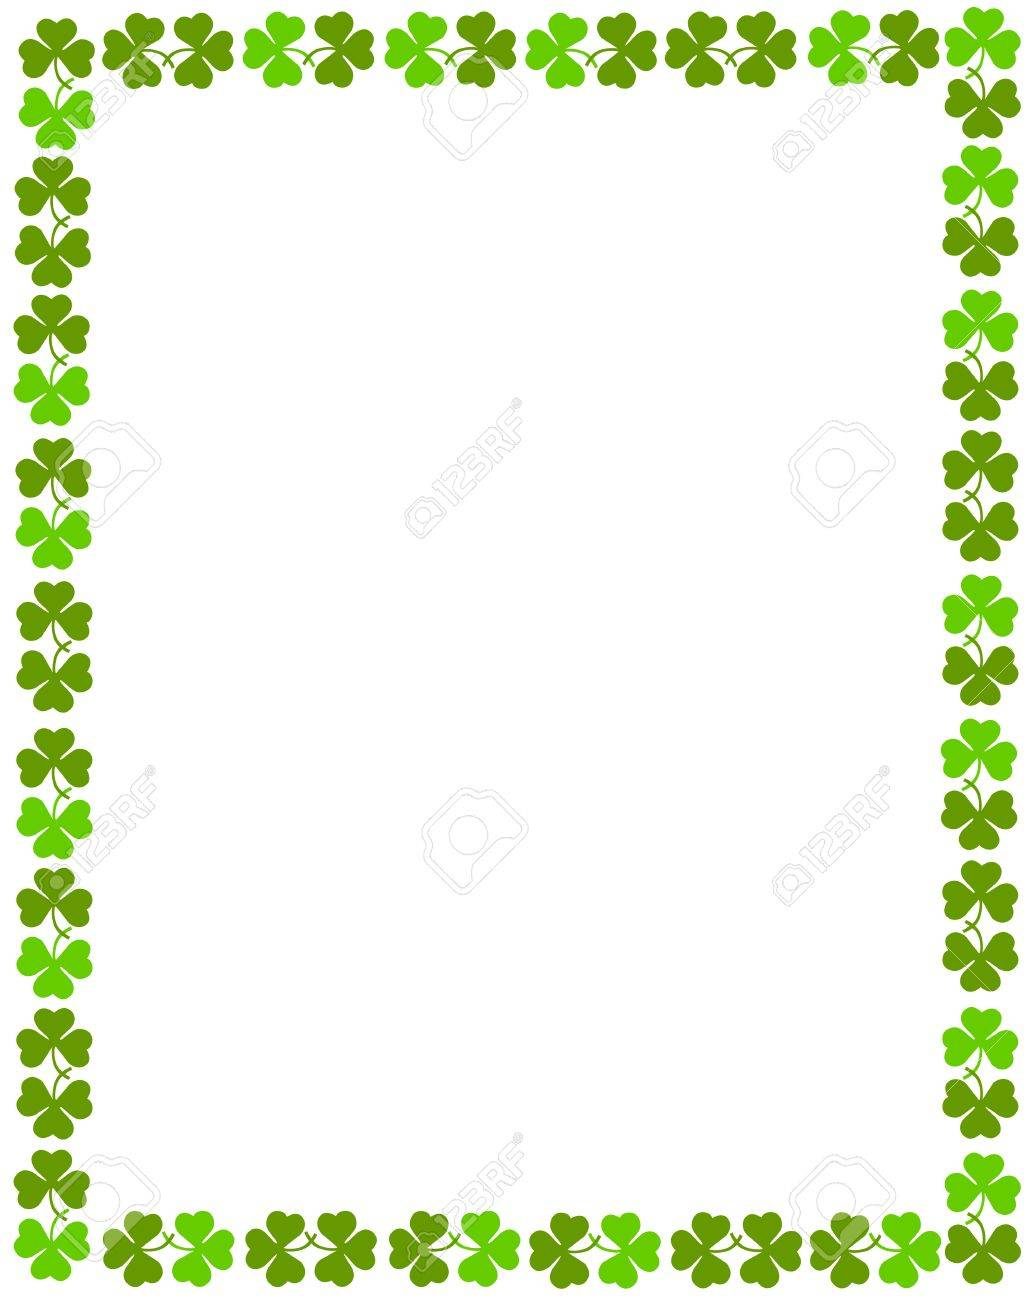 hight resolution of patrick s day background border stock vector 38909904